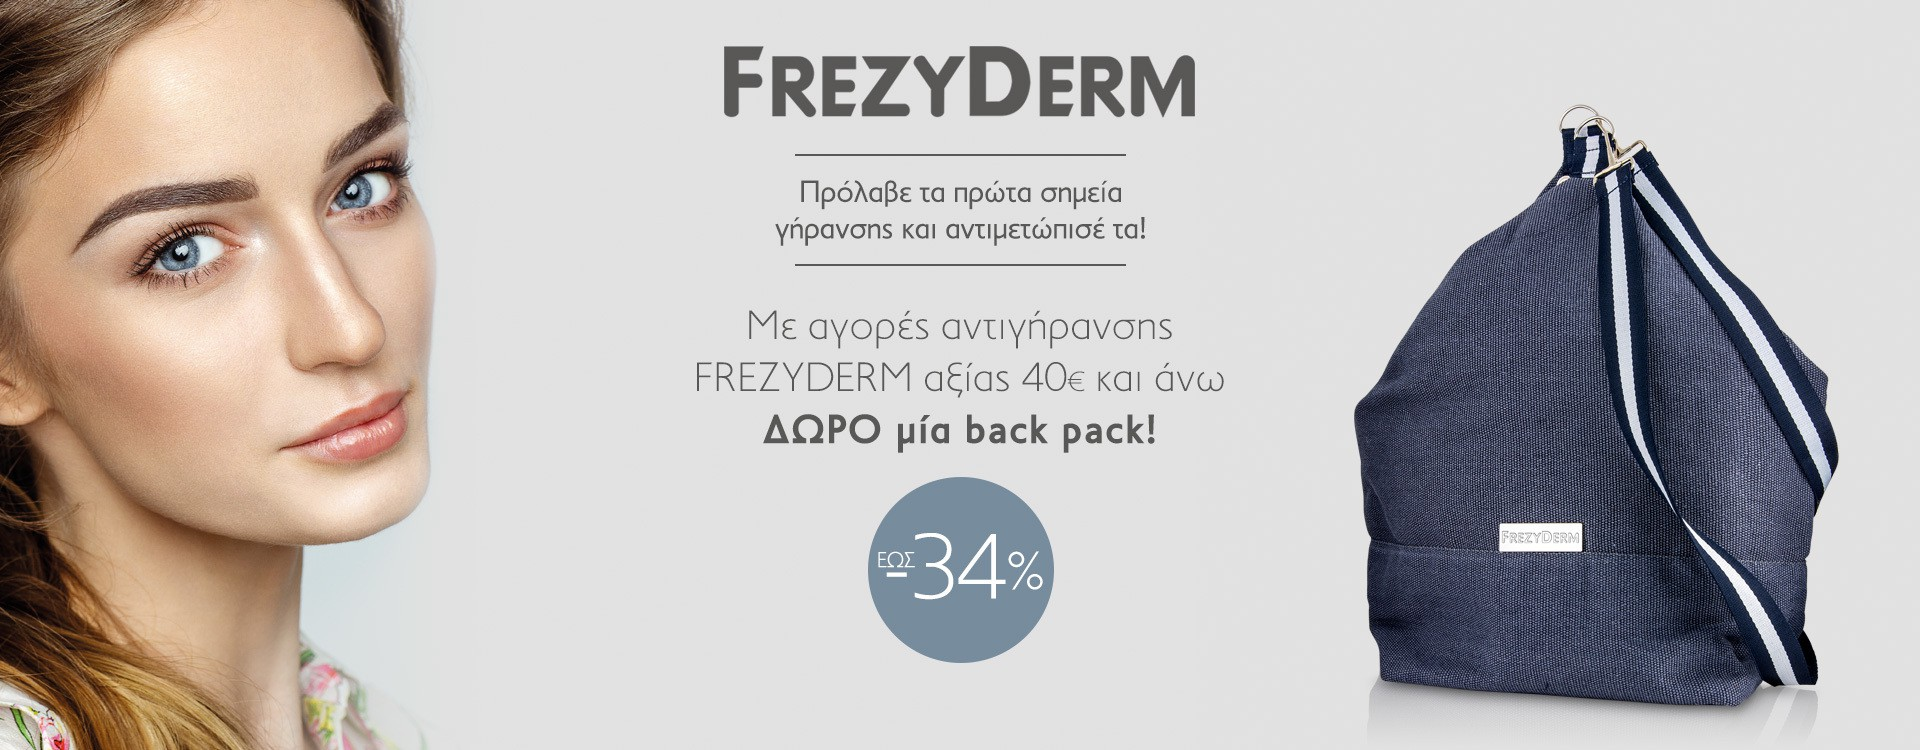 Slider frezyderm bag nov18 1920x750